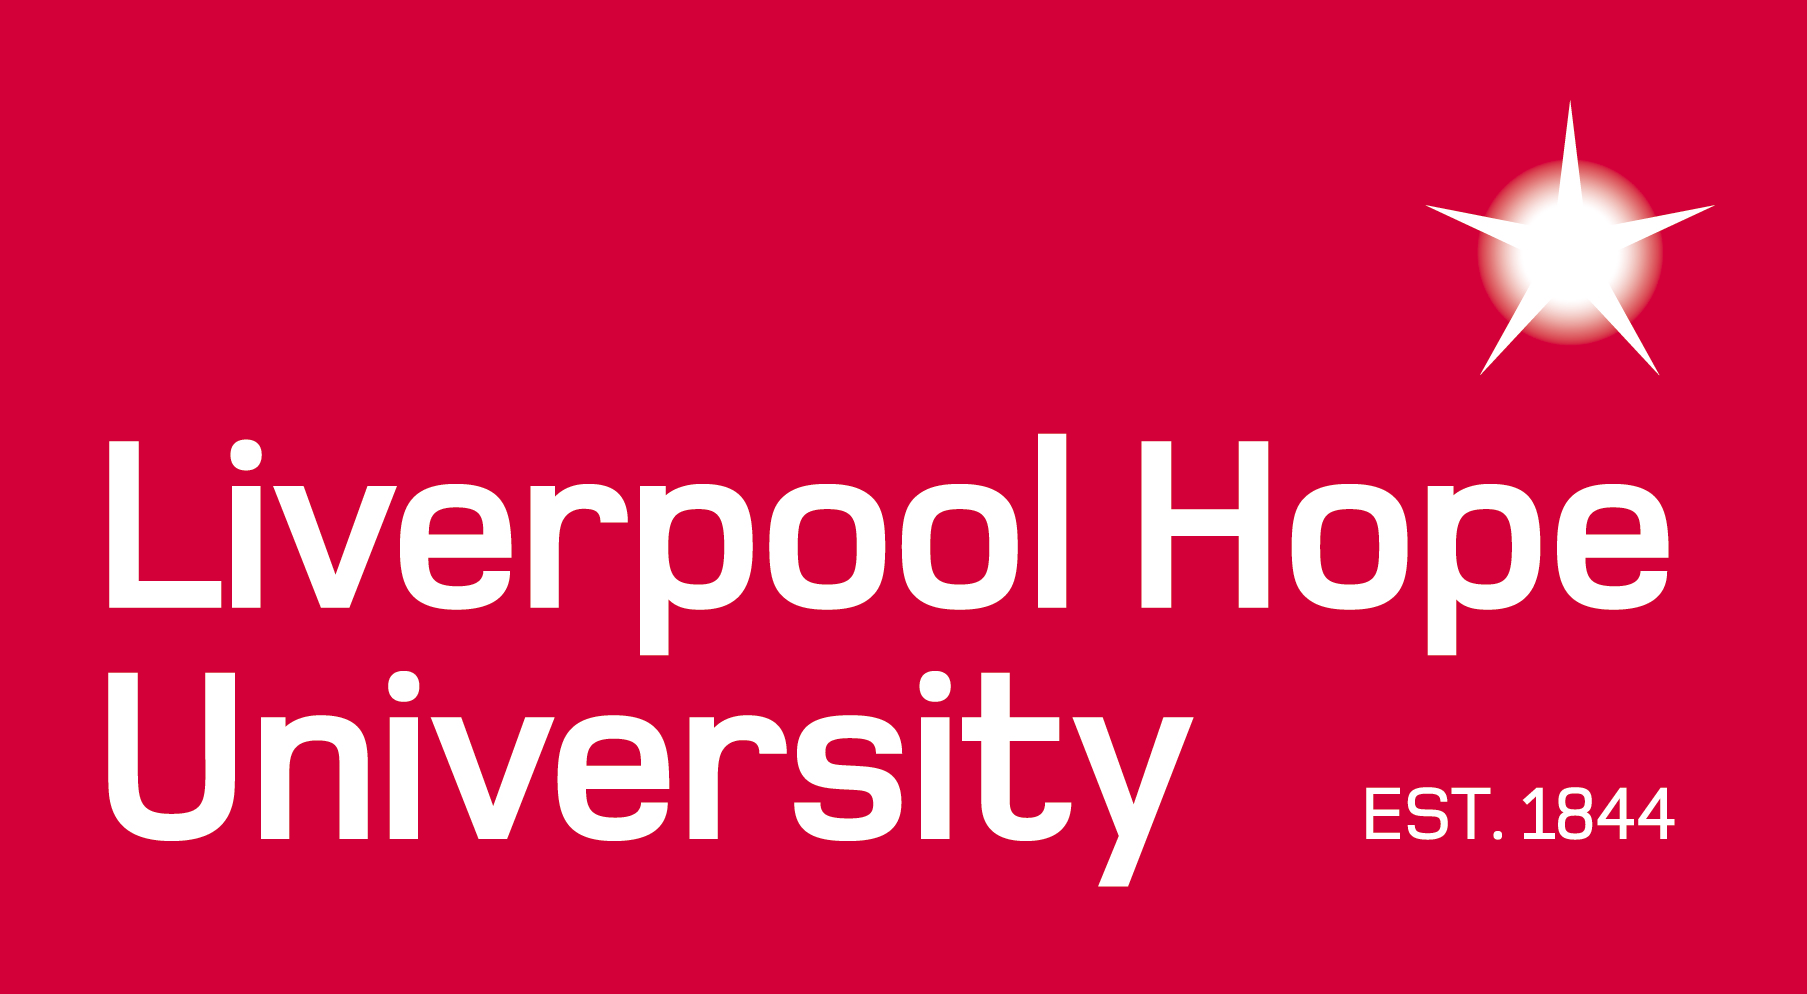 Liverpool Hope University banner logo